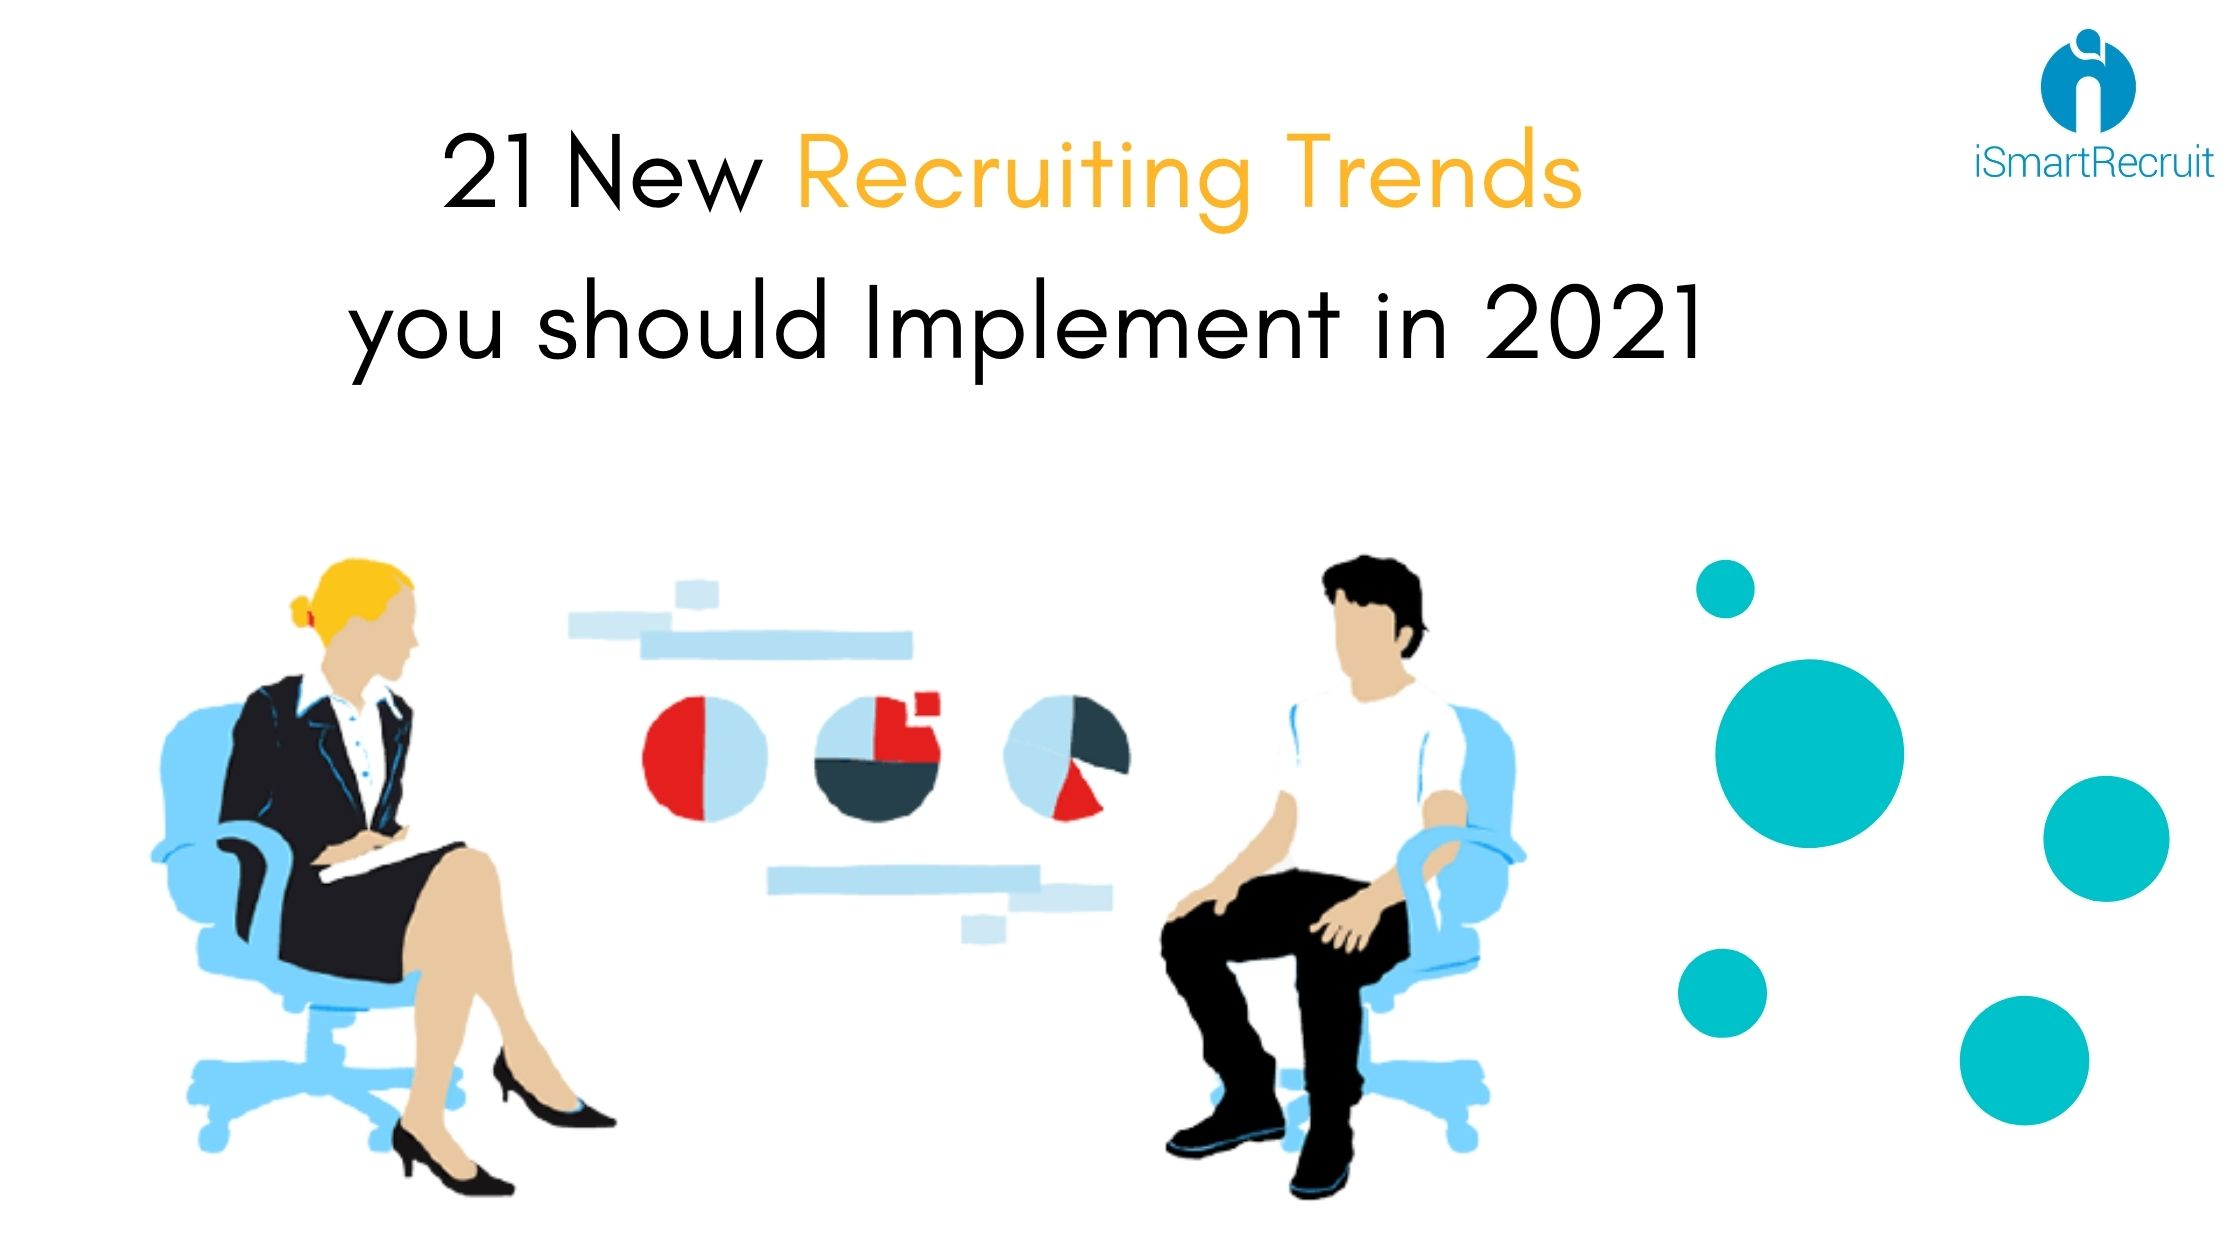 21 New Recruiting Trends you should Implement in 2021